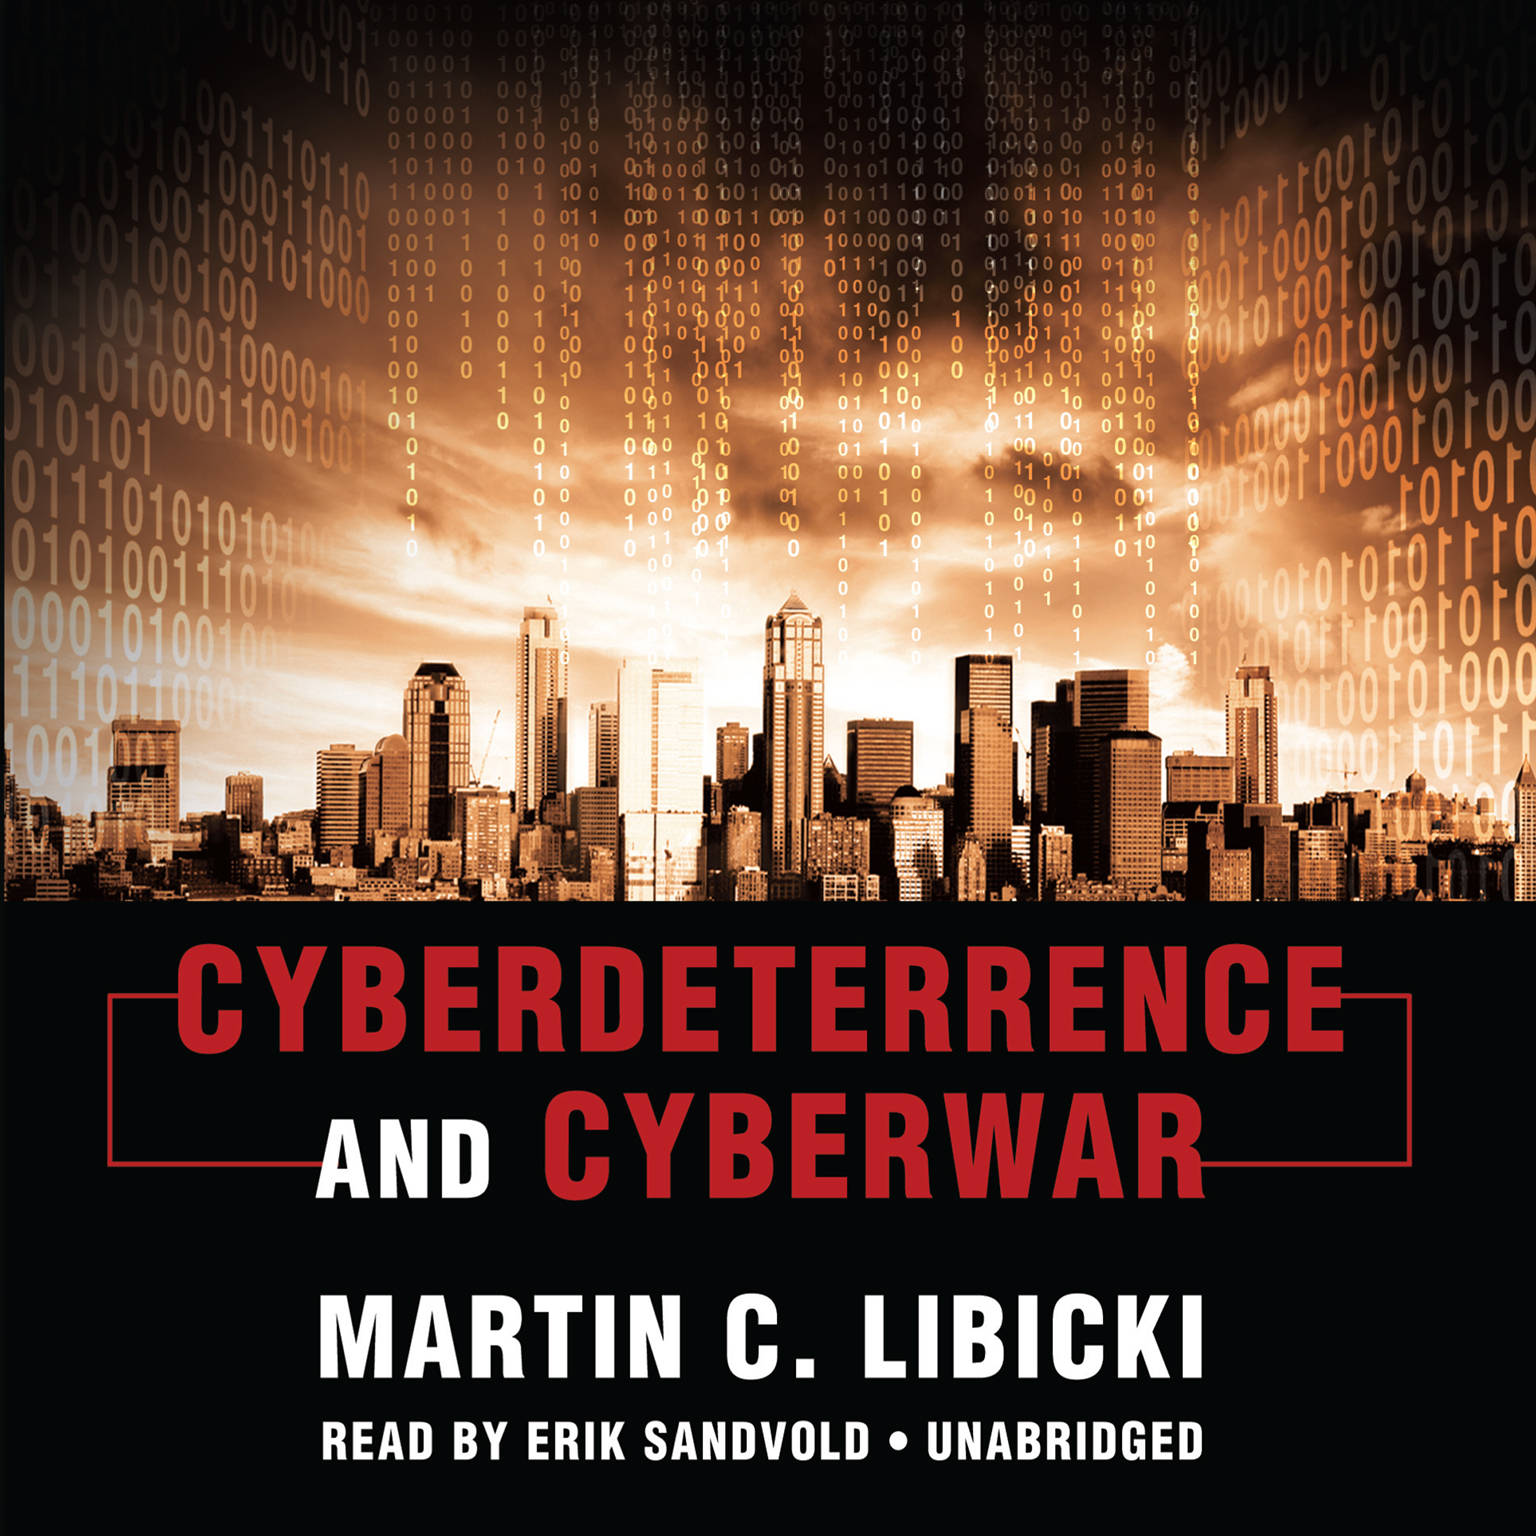 Printable Cyberdeterrence and Cyberwar Audiobook Cover Art